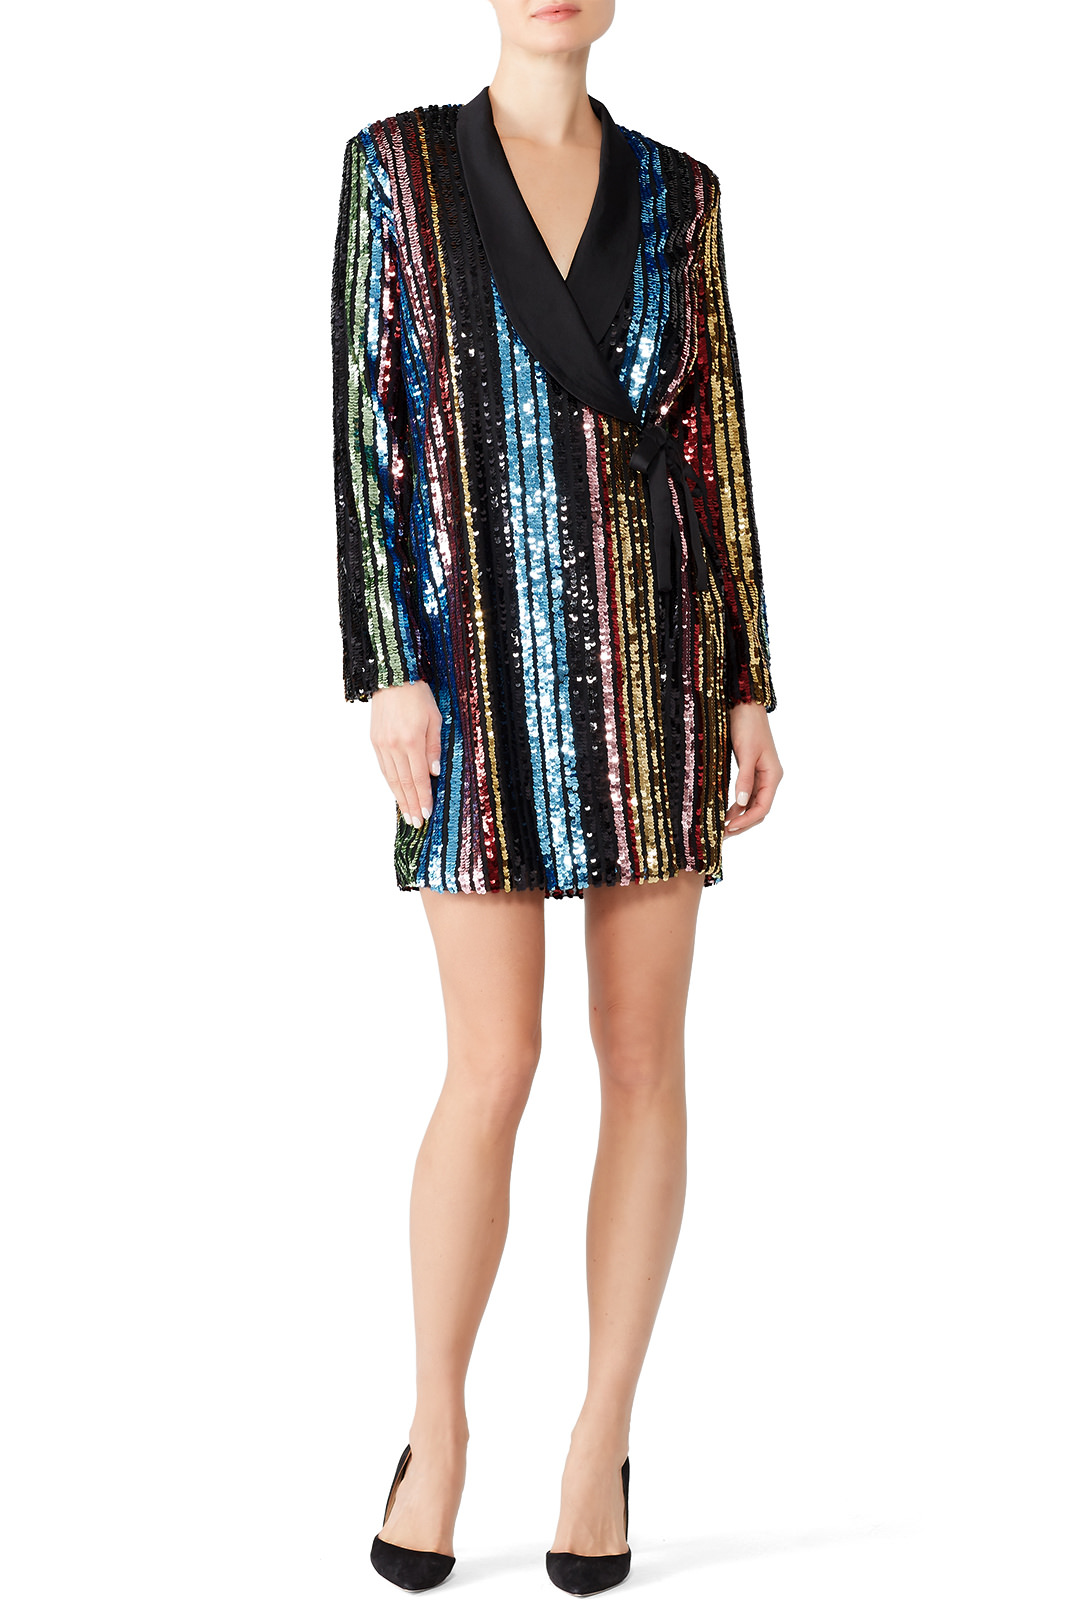 RAGA Sequin Charlize Blazer Dress - This dress has YAS QUEEN written all over it.